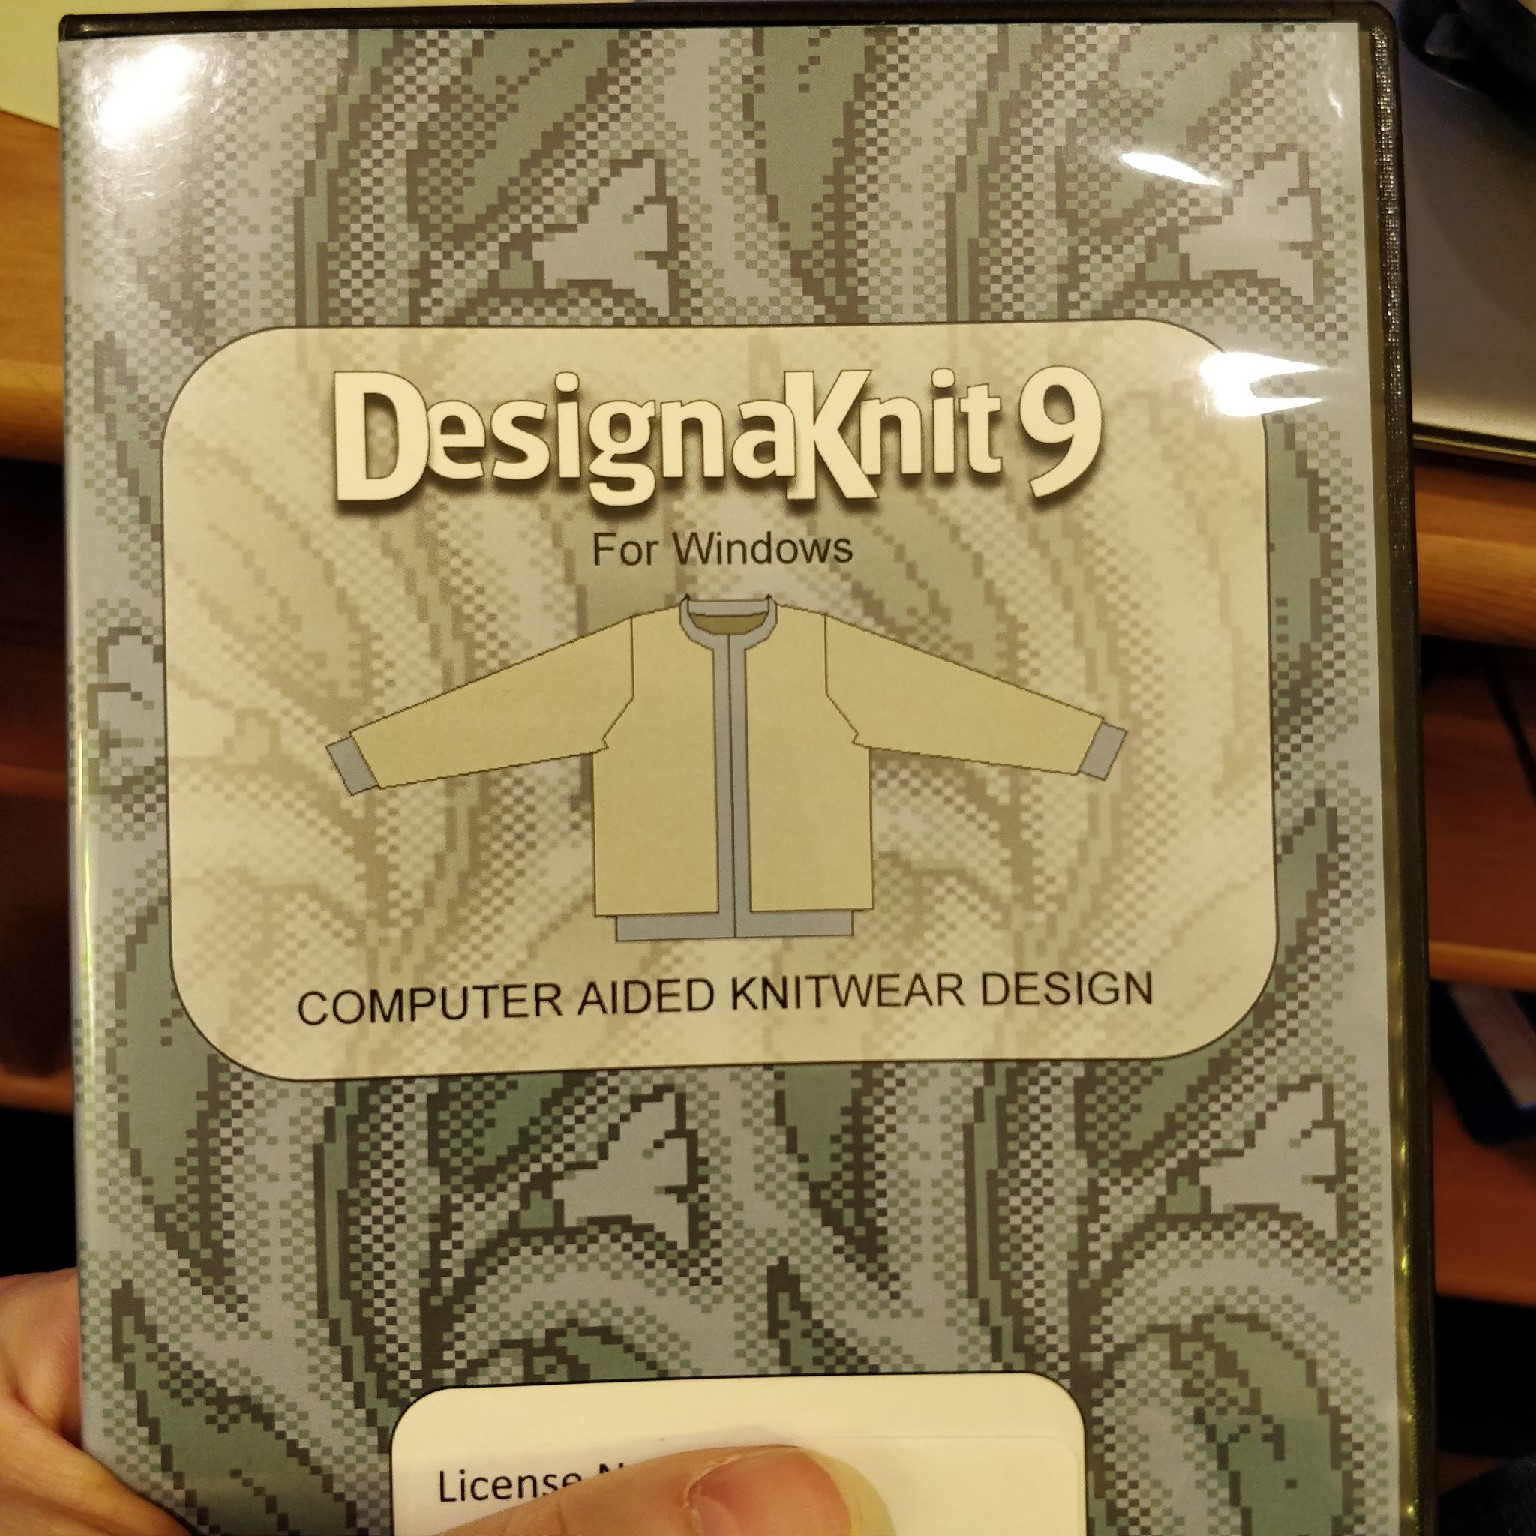 The CD case for Designaknit 9